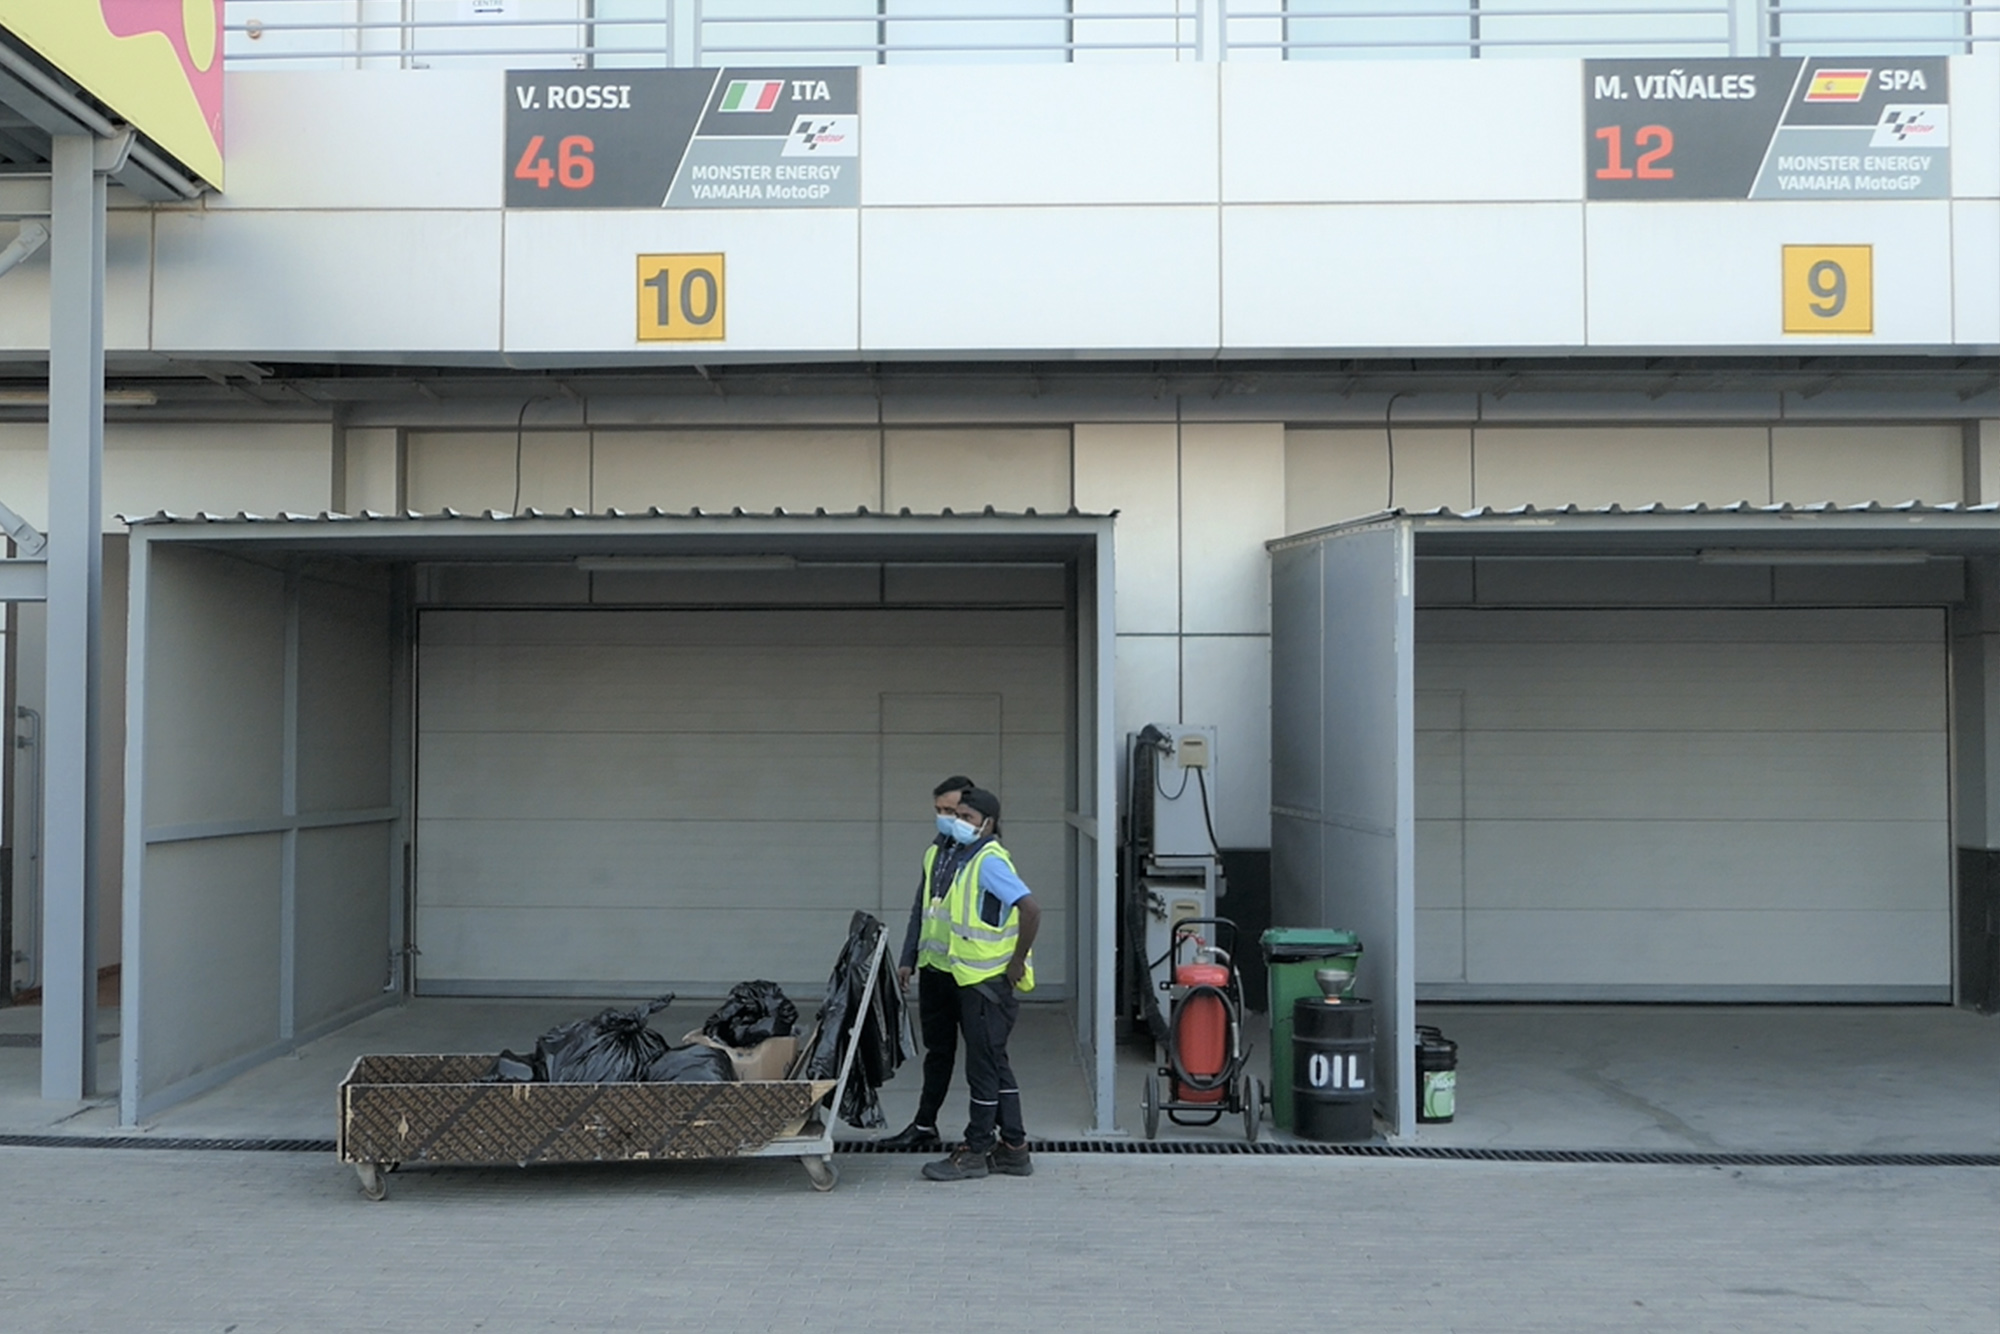 Workers clear out pit garages uring the 2020 MotoGP Qatar Grand Prix